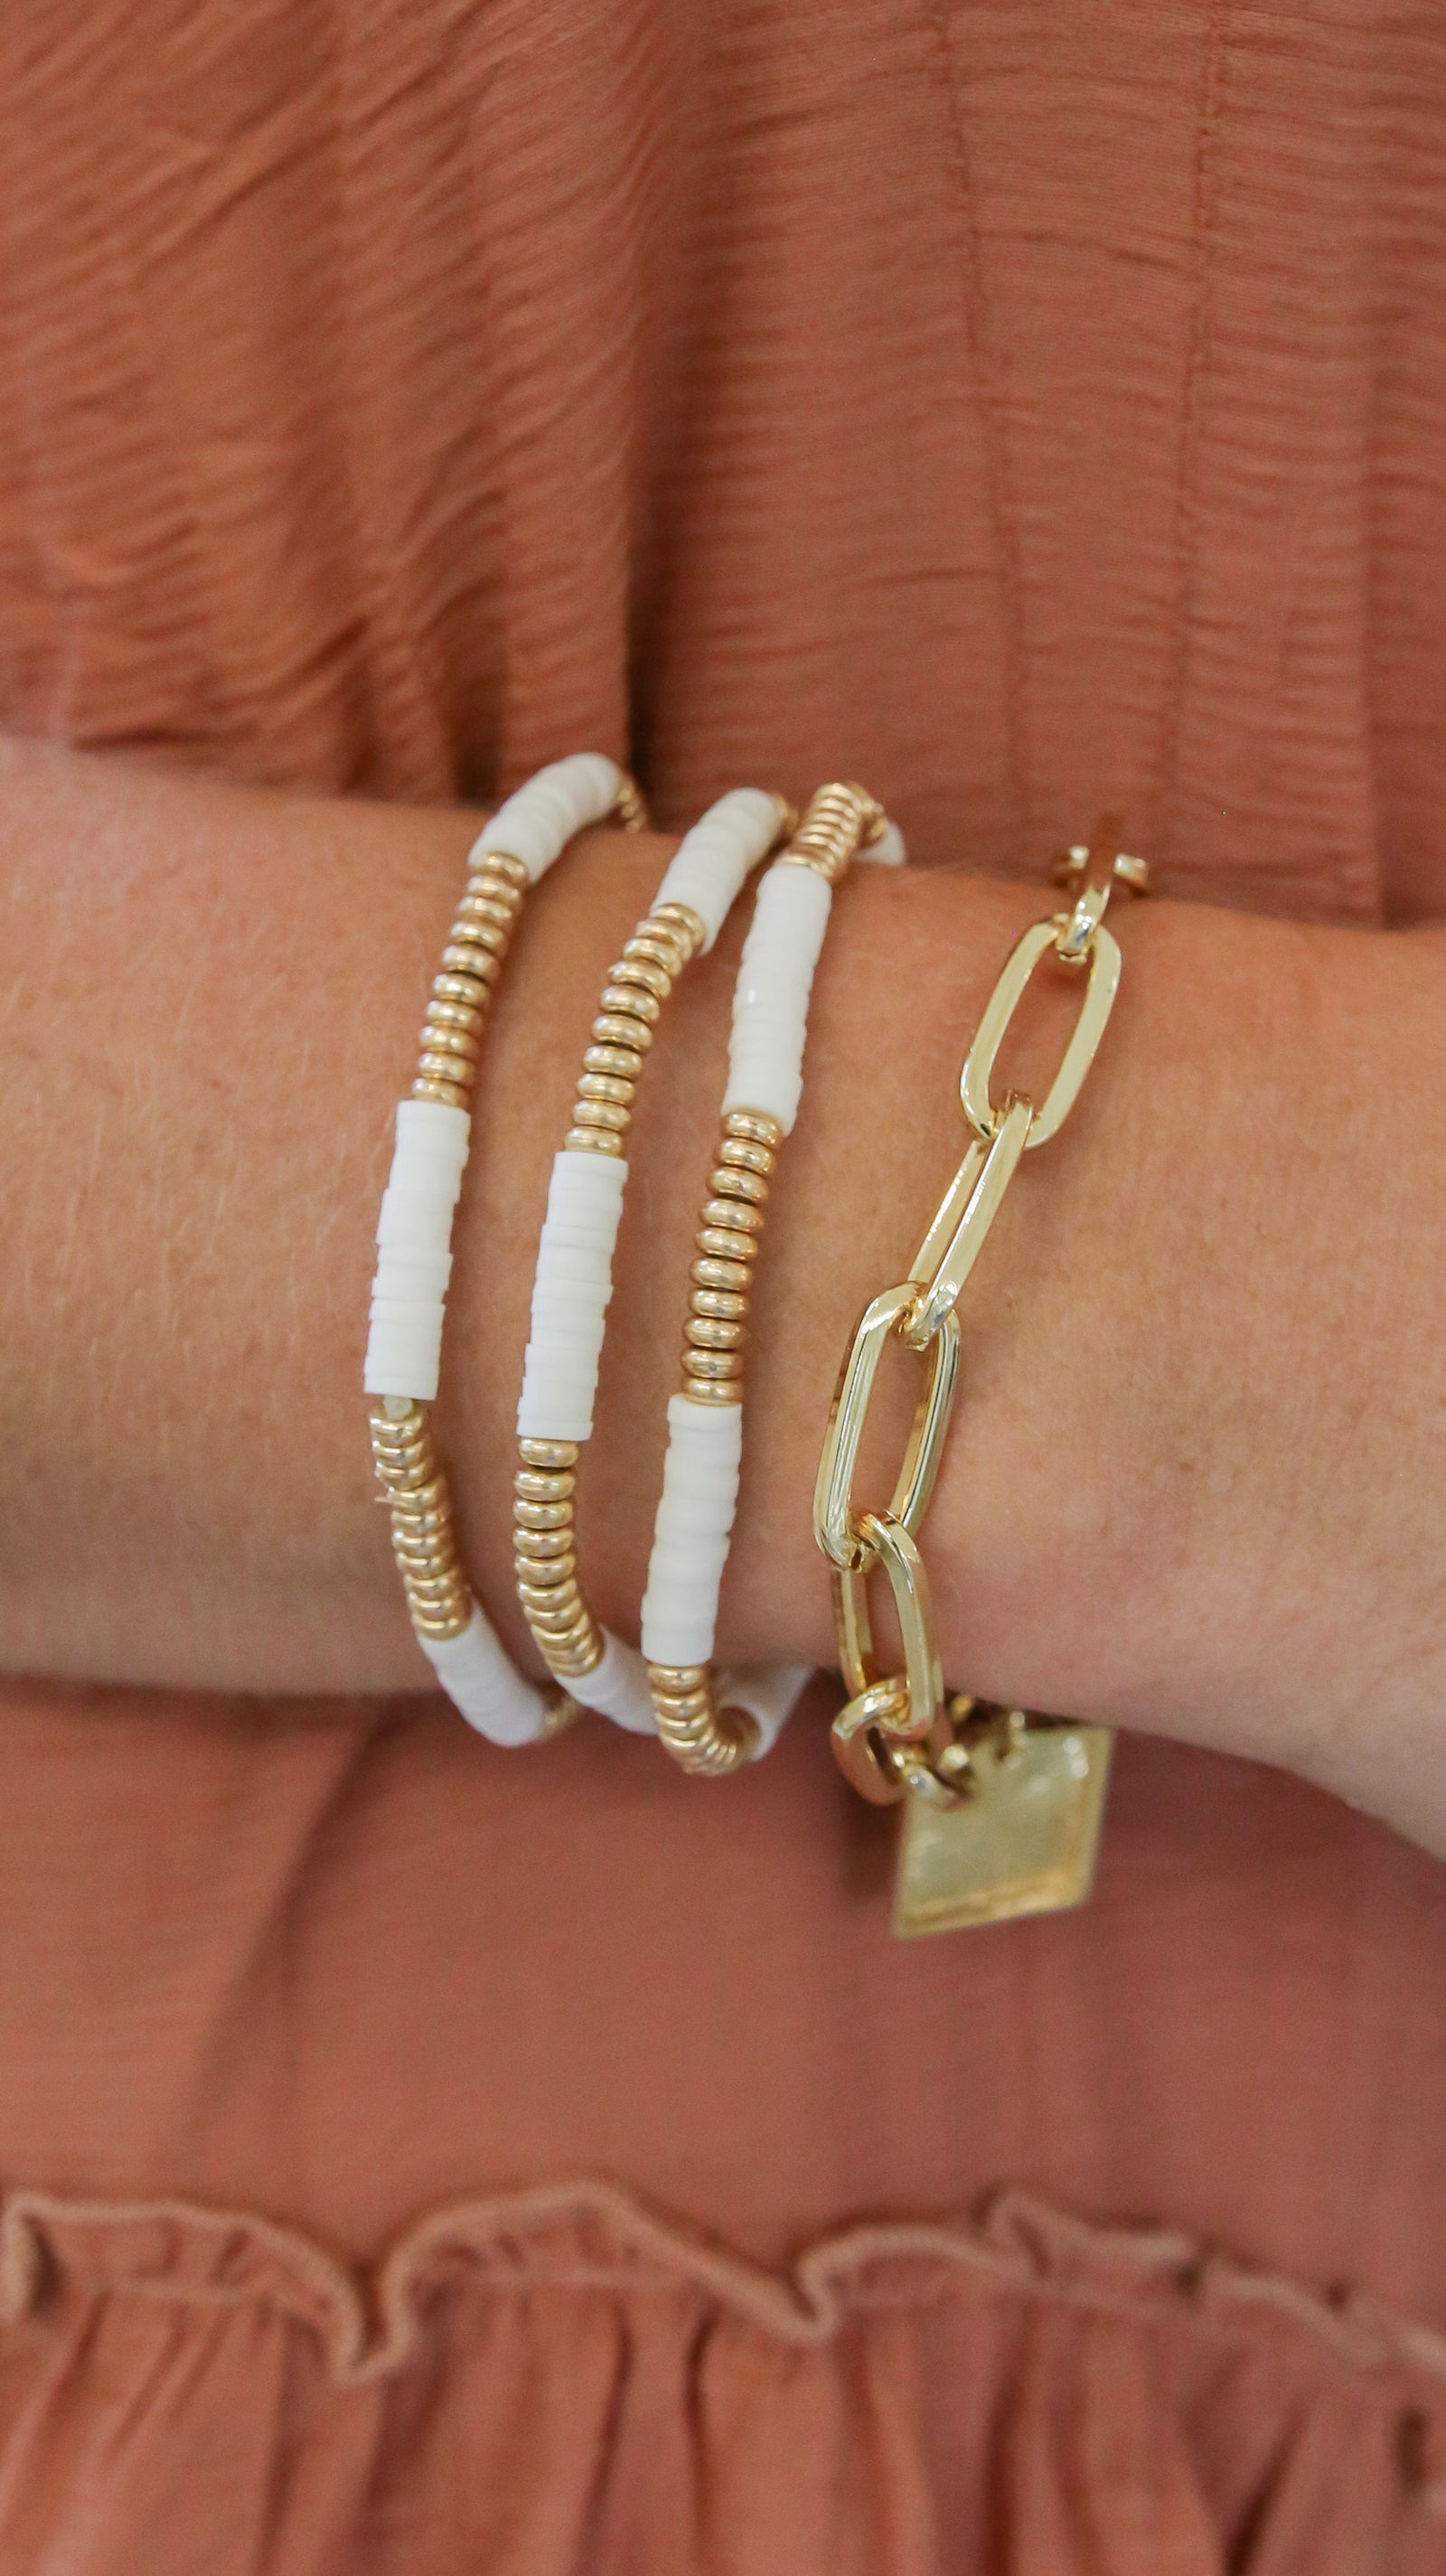 Make A Wish Bracelet Set - White